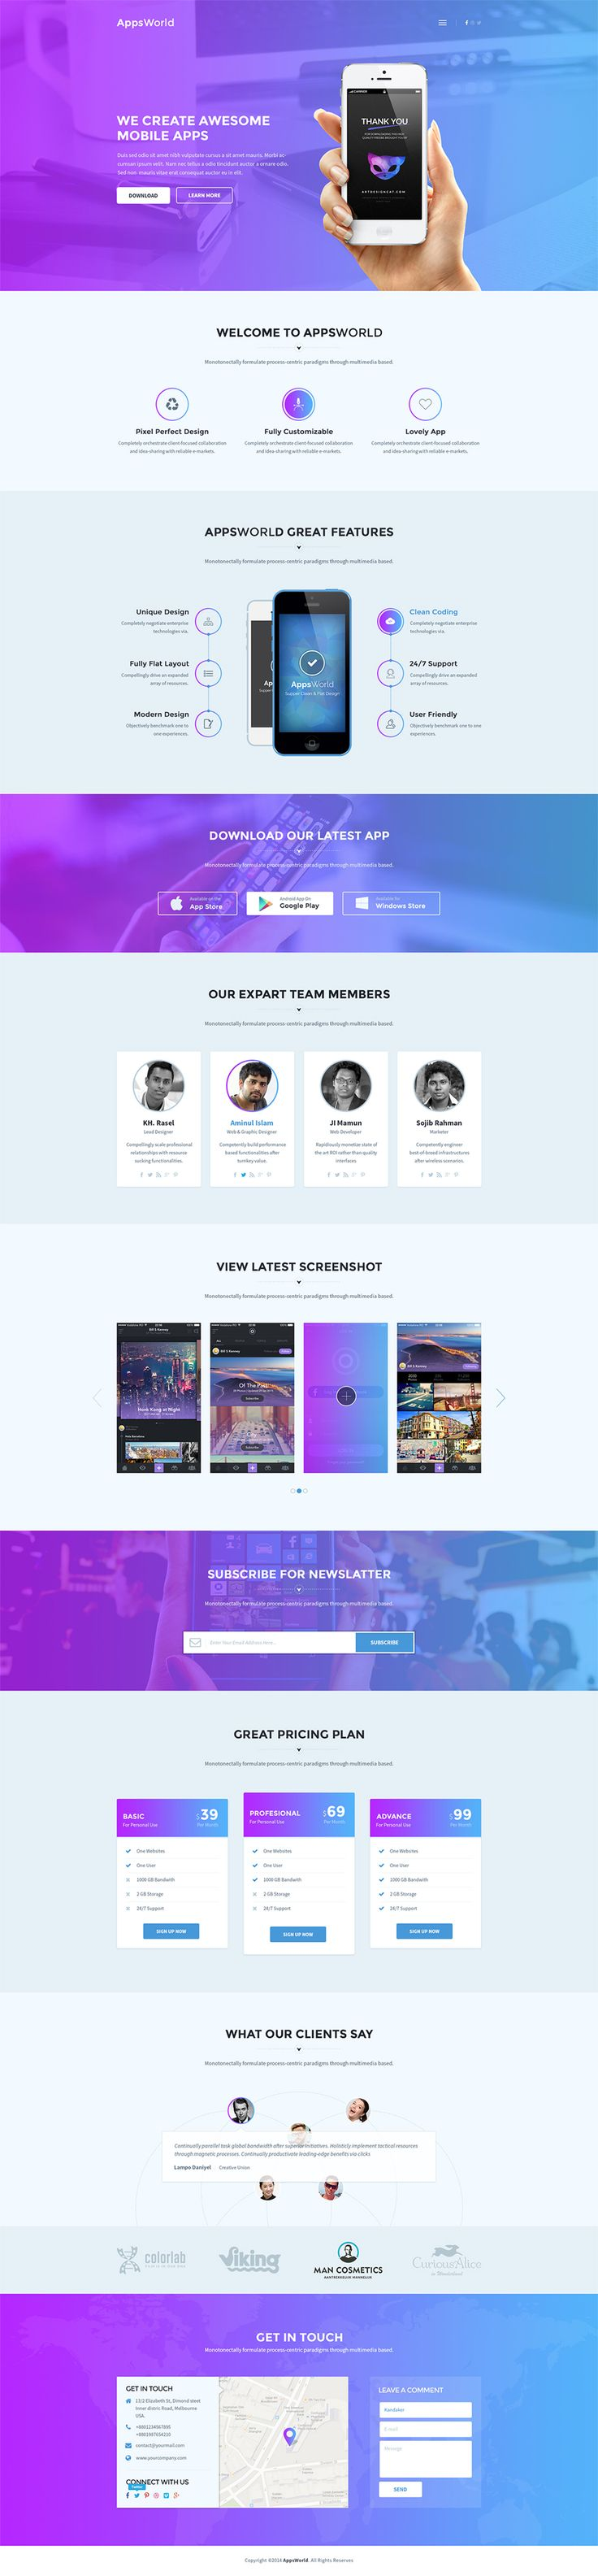 'AppsWorld' is a new One Page WordPress theme suited for creating a landing page for your app. The theme comes with 3 color scheme options: Default, Gradient and Dark scheme. I quite like this unique testimonial section design. Overall 'AppsWorld' will give you a great first impression for your new product.